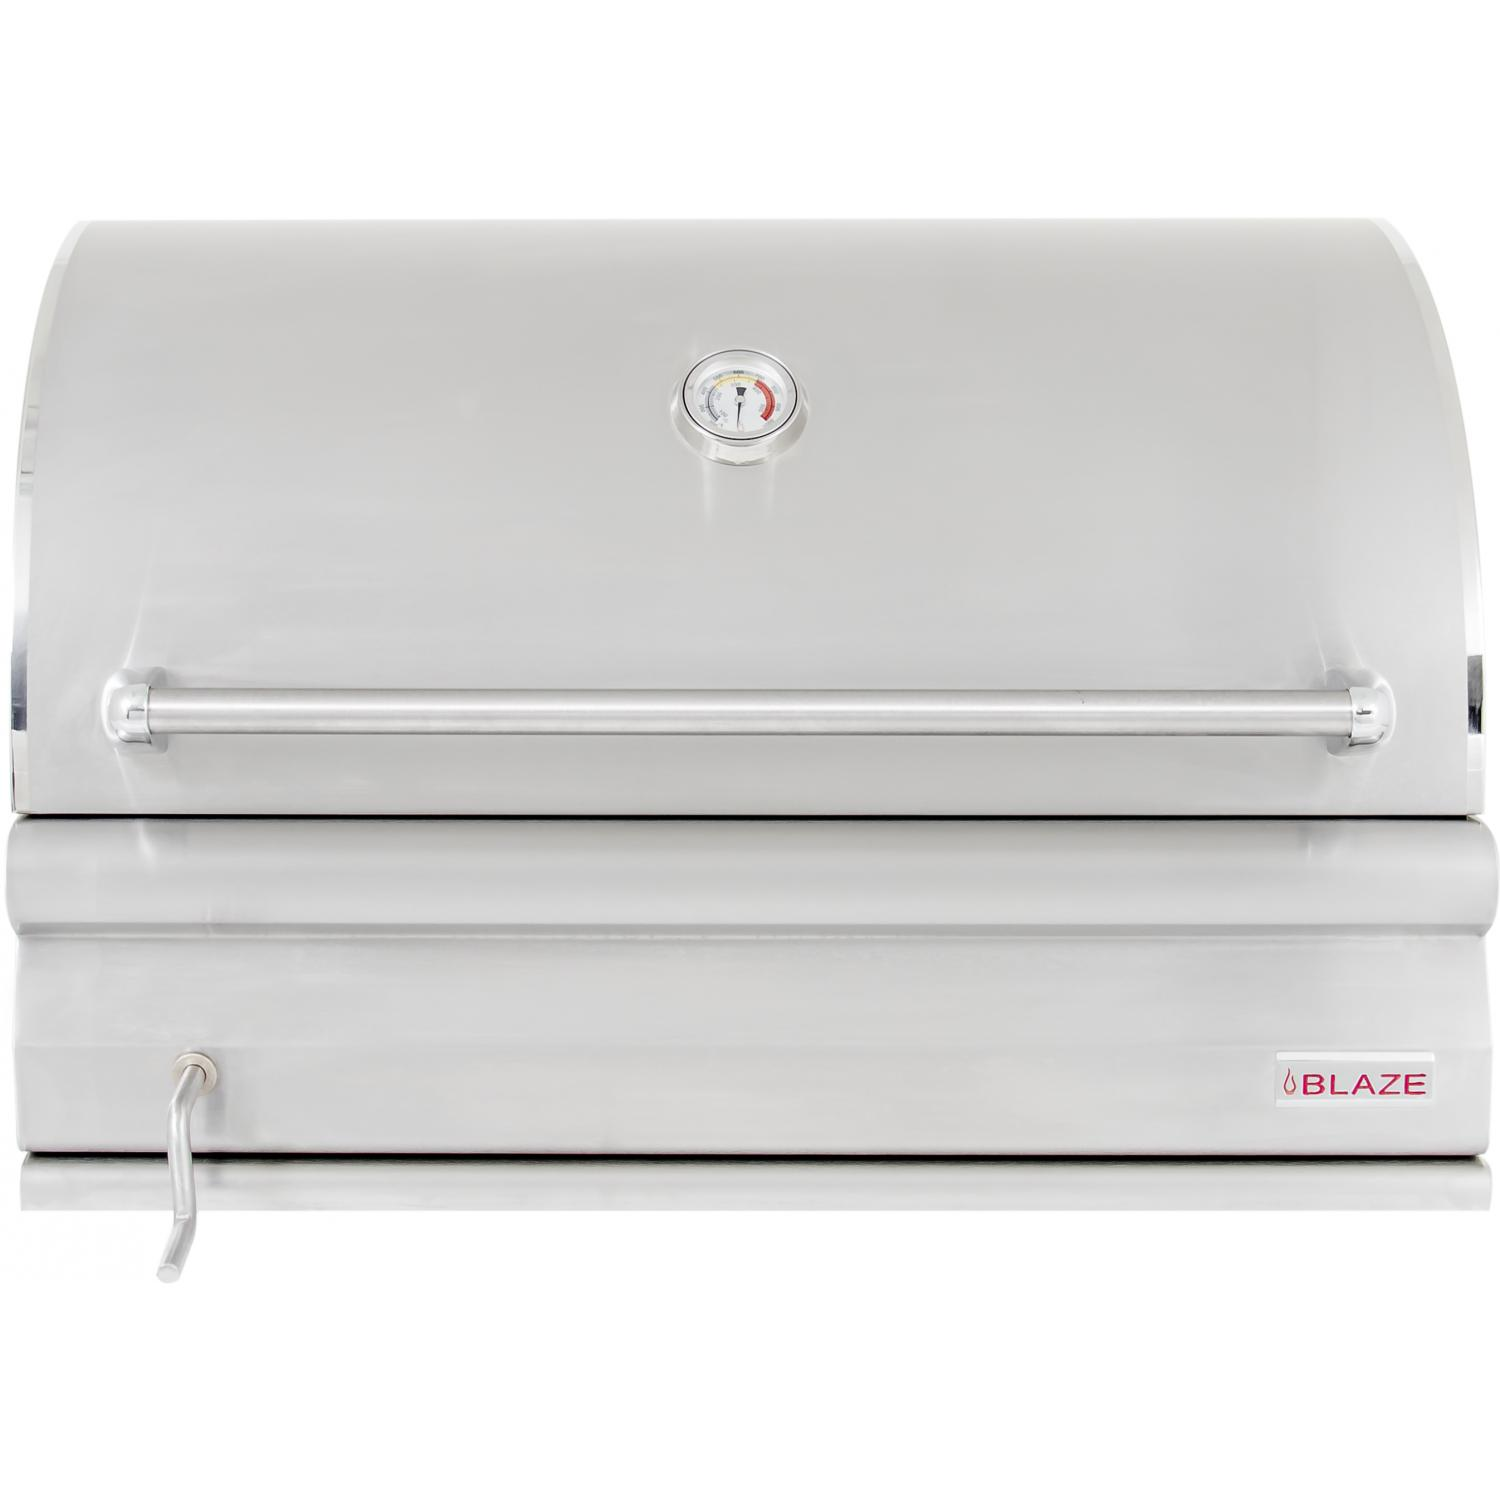 blaze 32inch builtin stainless steel charcoal grill - Stainless Steel Charcoal Grill